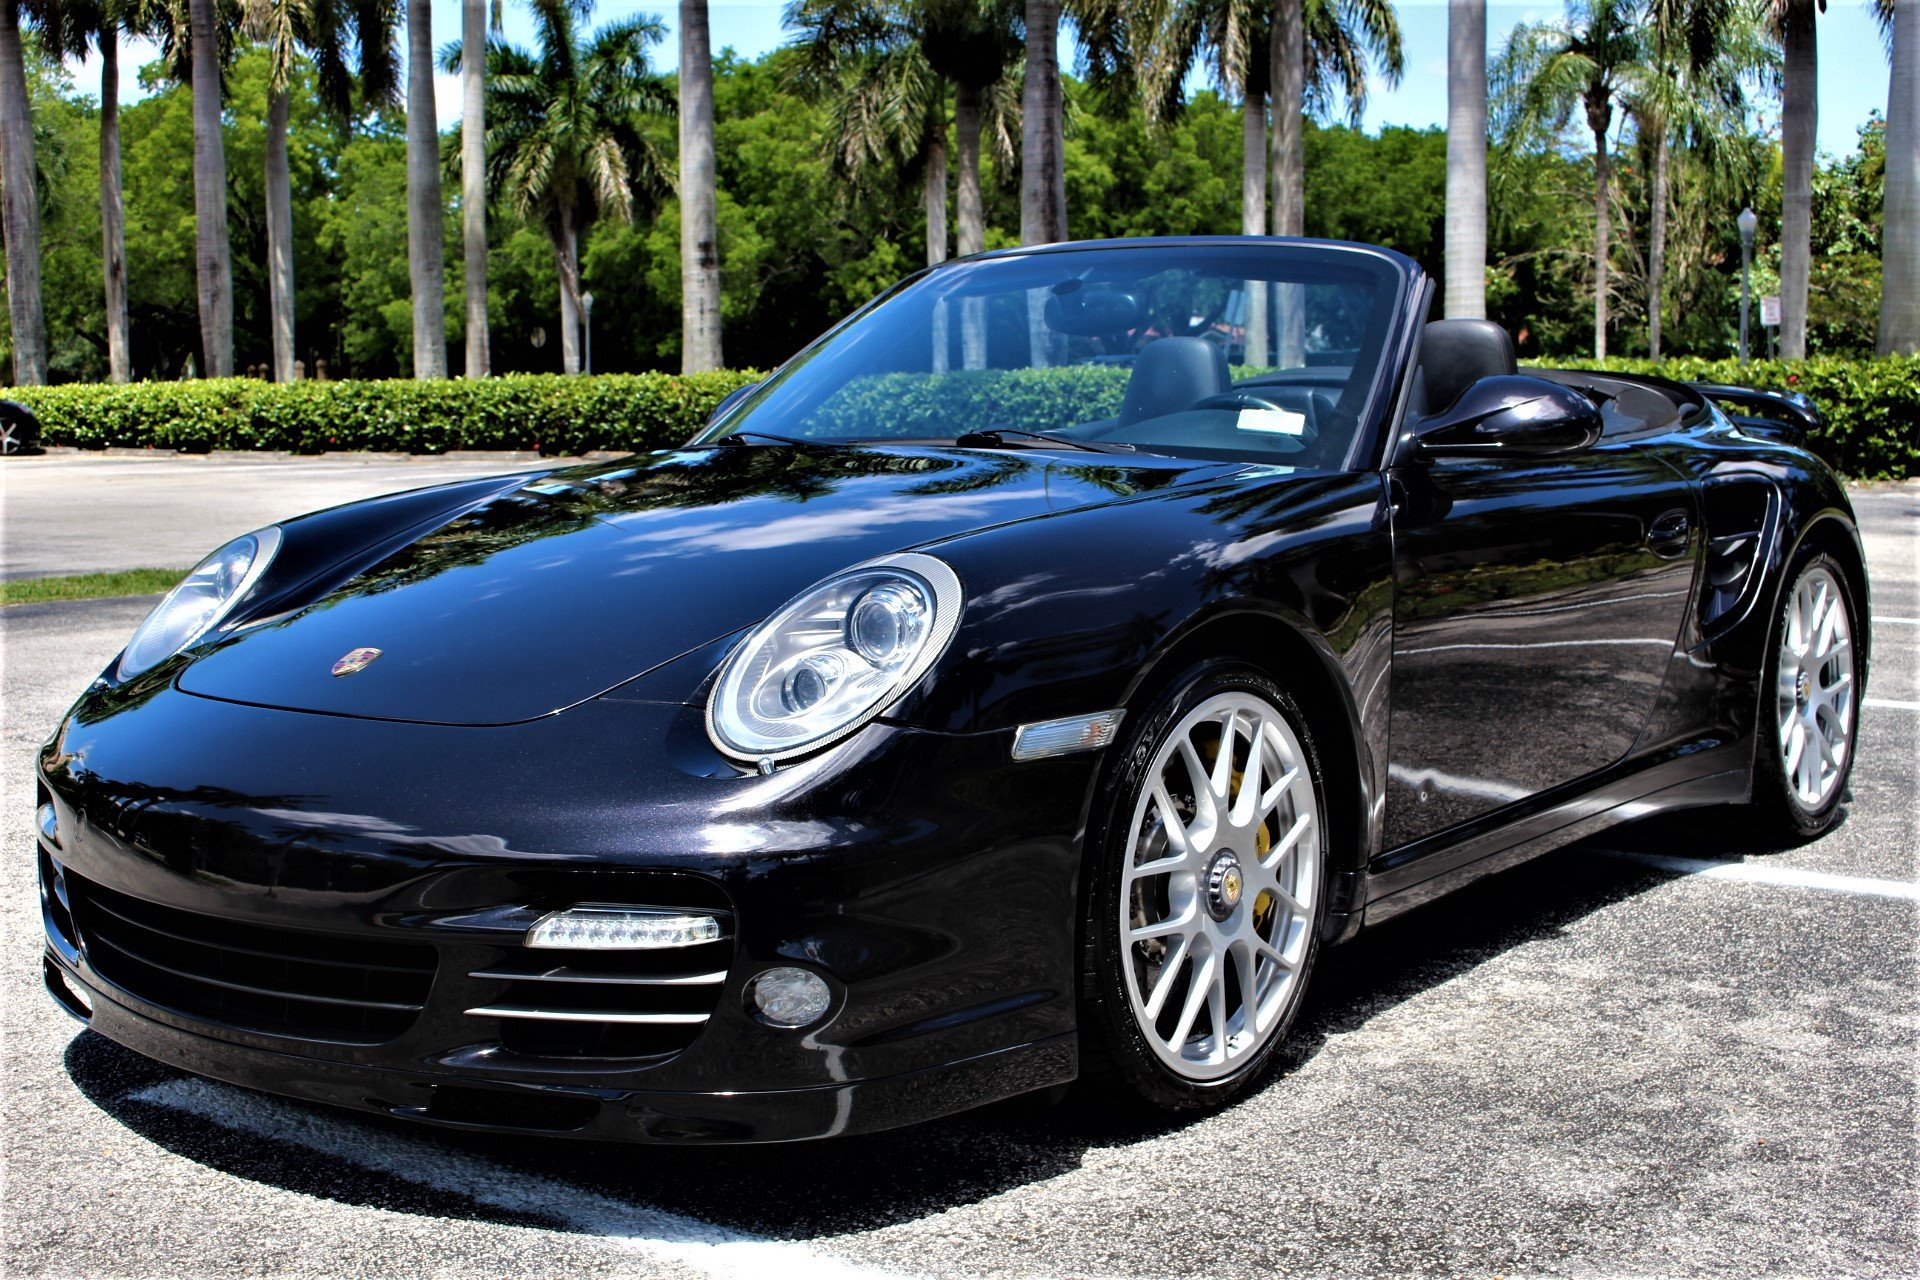 Used 2011 Porsche 911 Turbo S for sale Sold at The Gables Sports Cars in Miami FL 33146 4